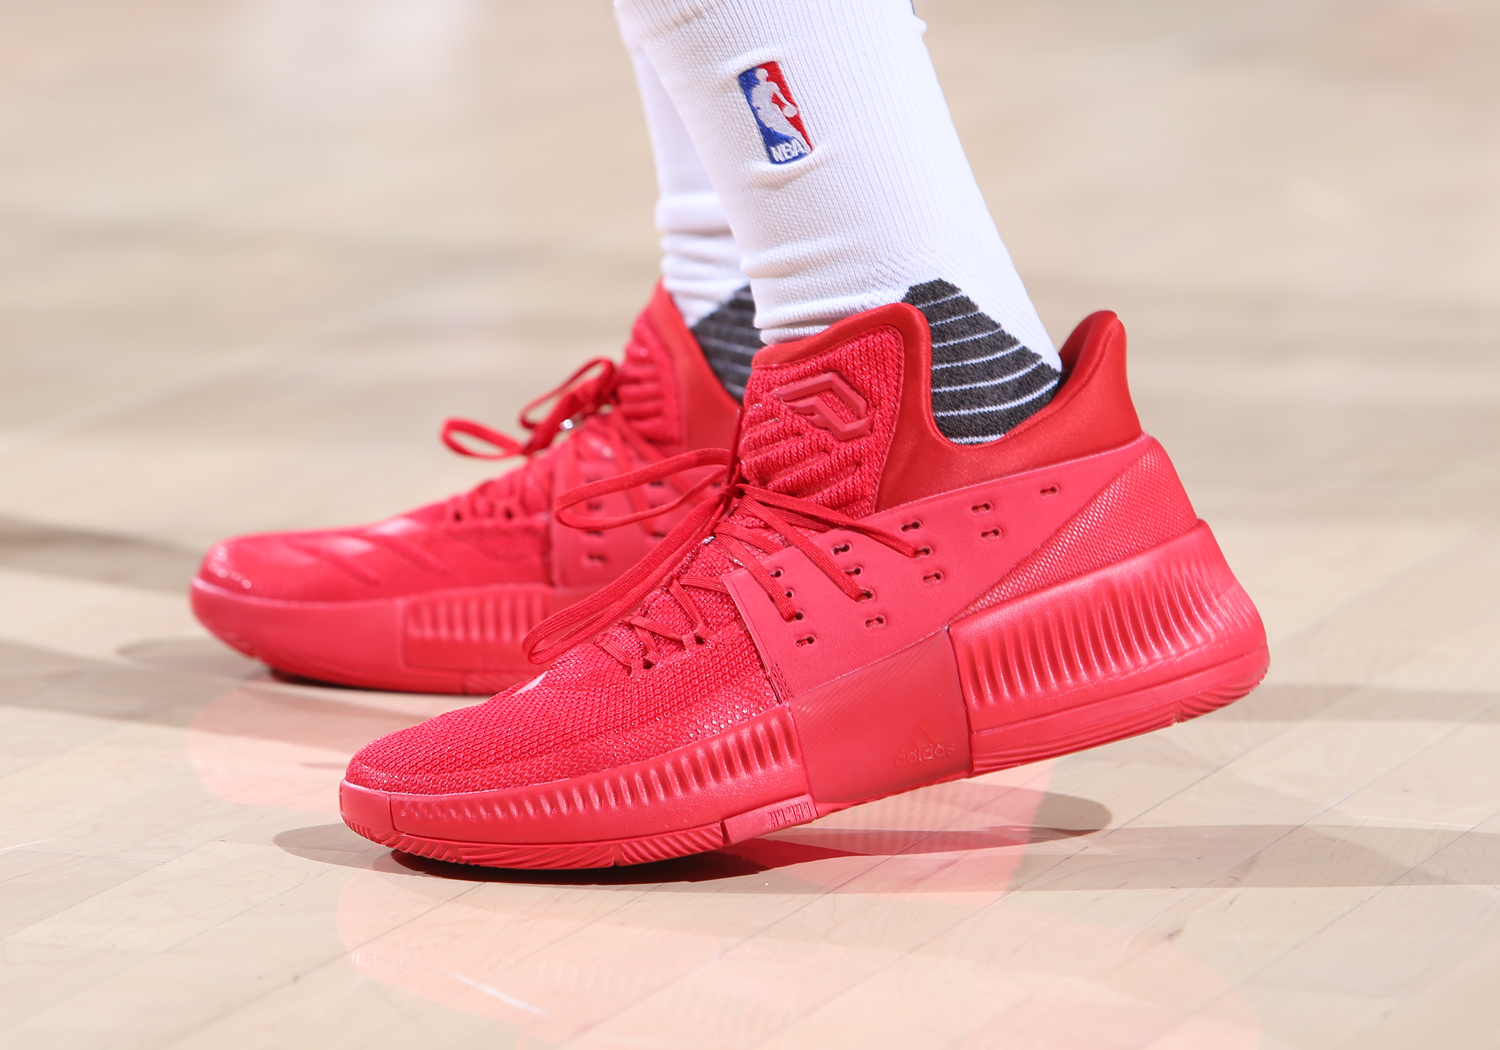 Image result for adidas dame 3 on court